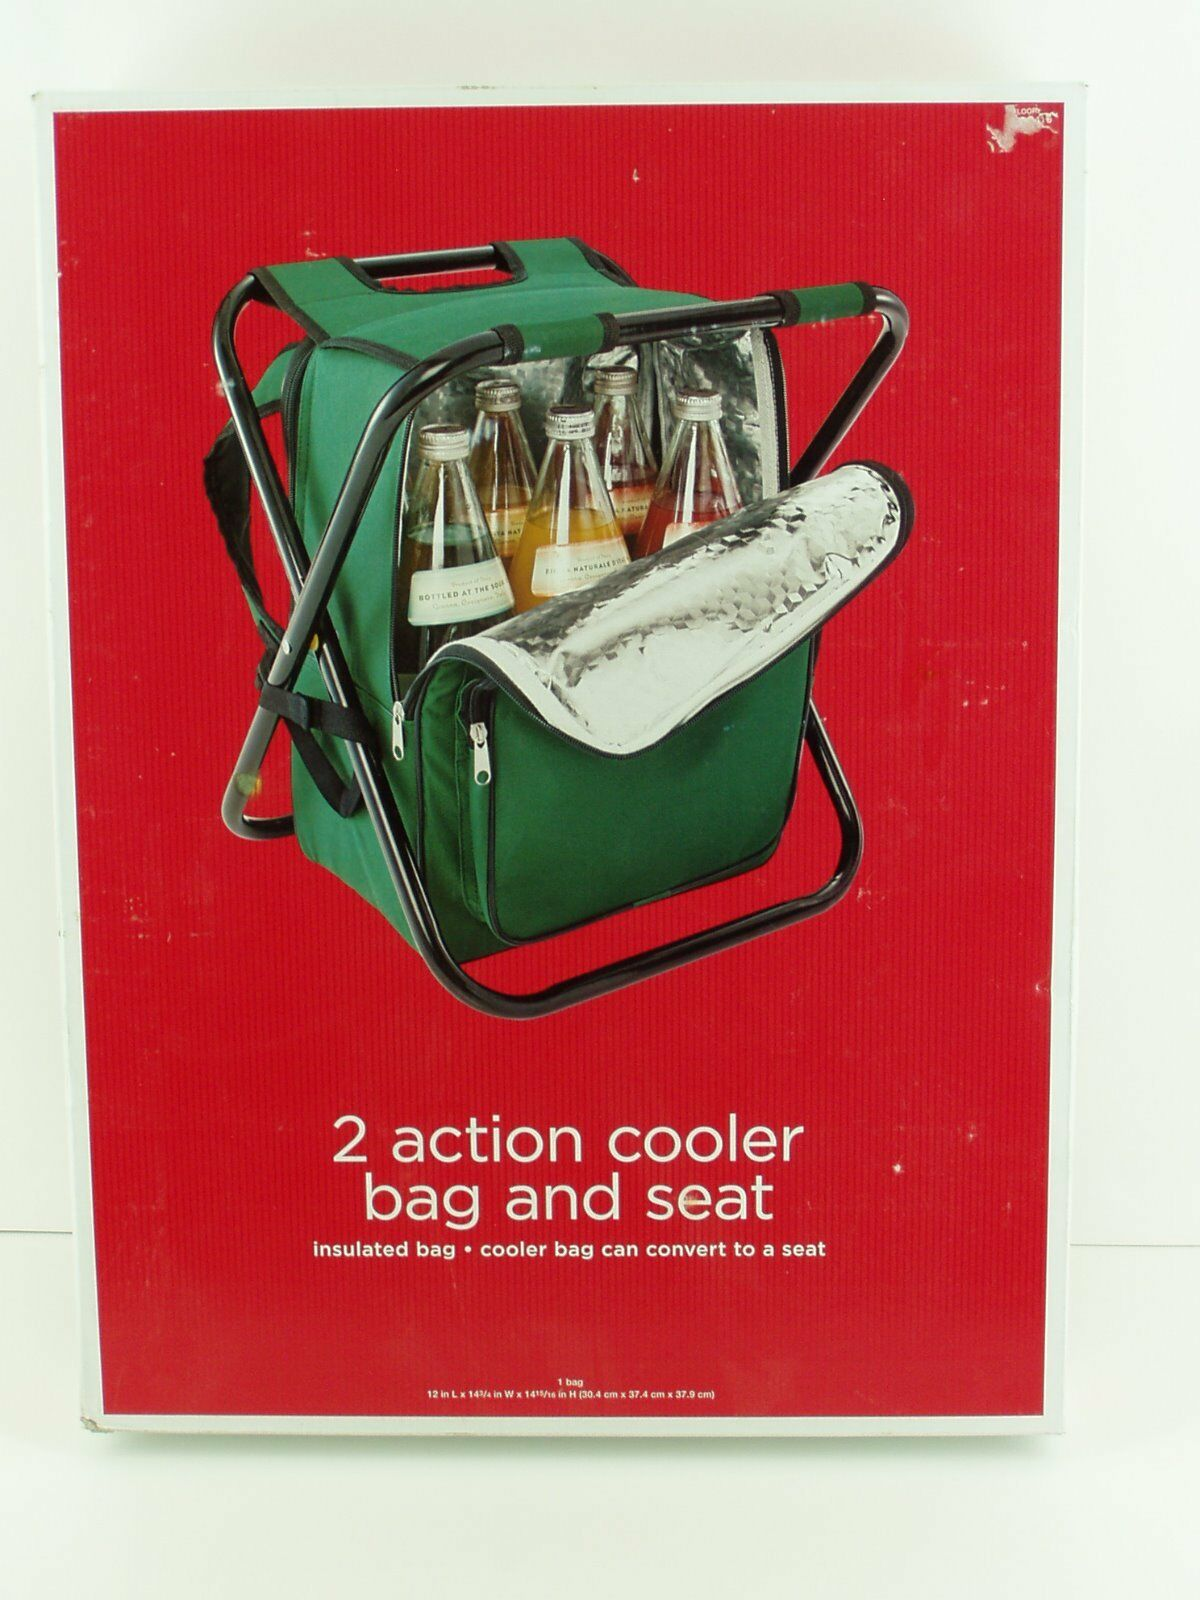 2 Action Cooler Bag And Seat, Insulated Bag, Cooler Bag  Congreens To A Seat  customers first